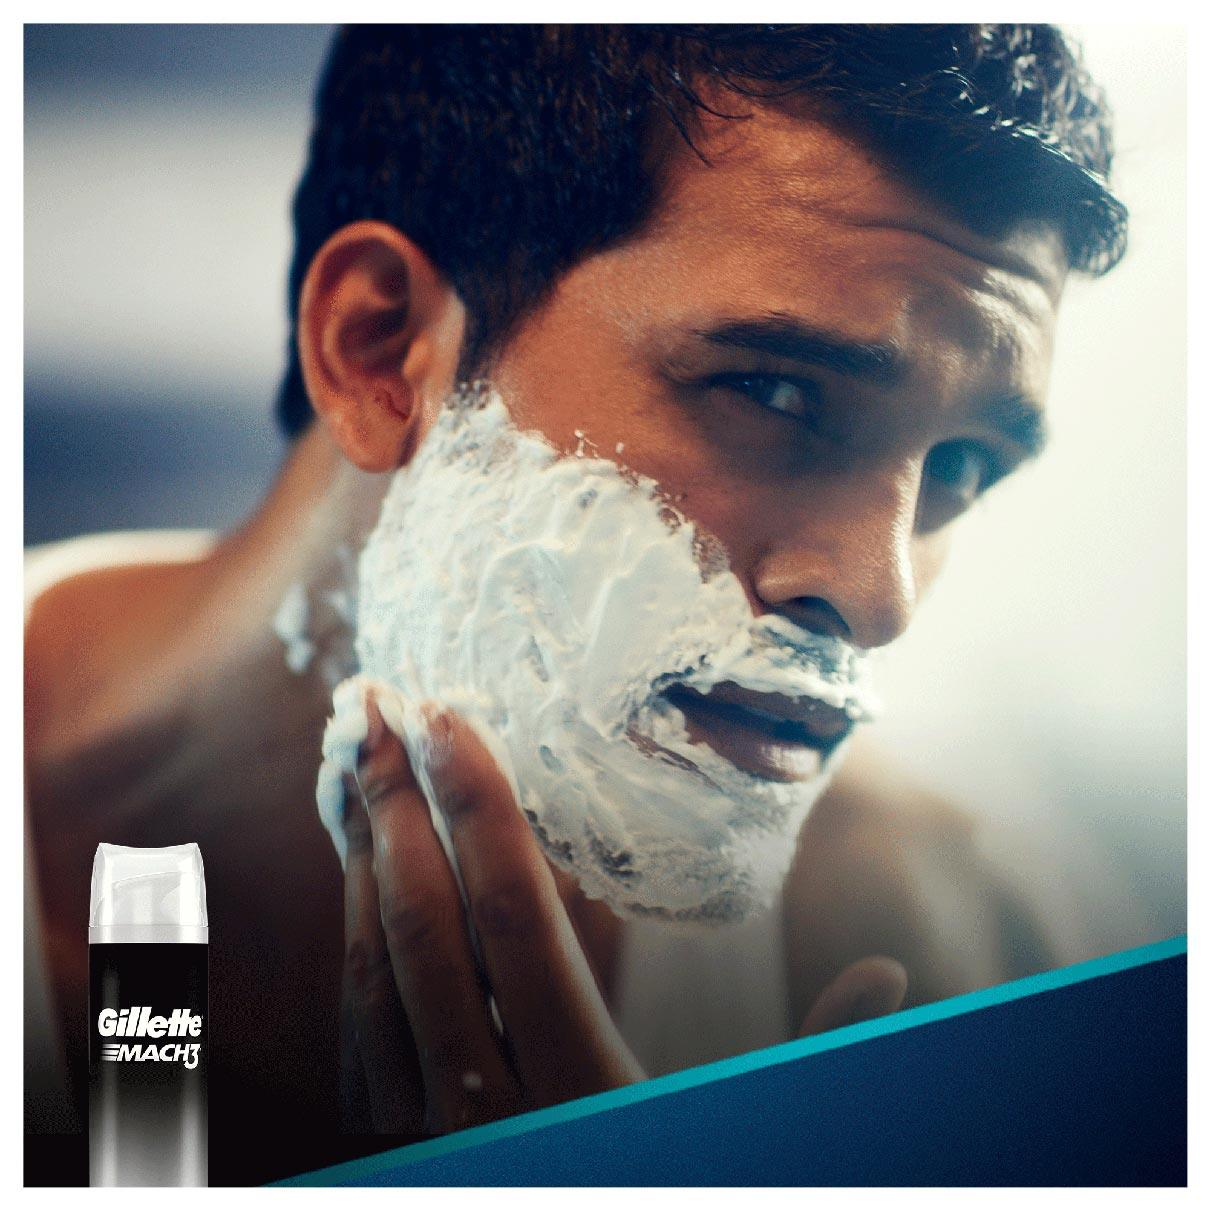 Mach3 Smooth Shave Gel